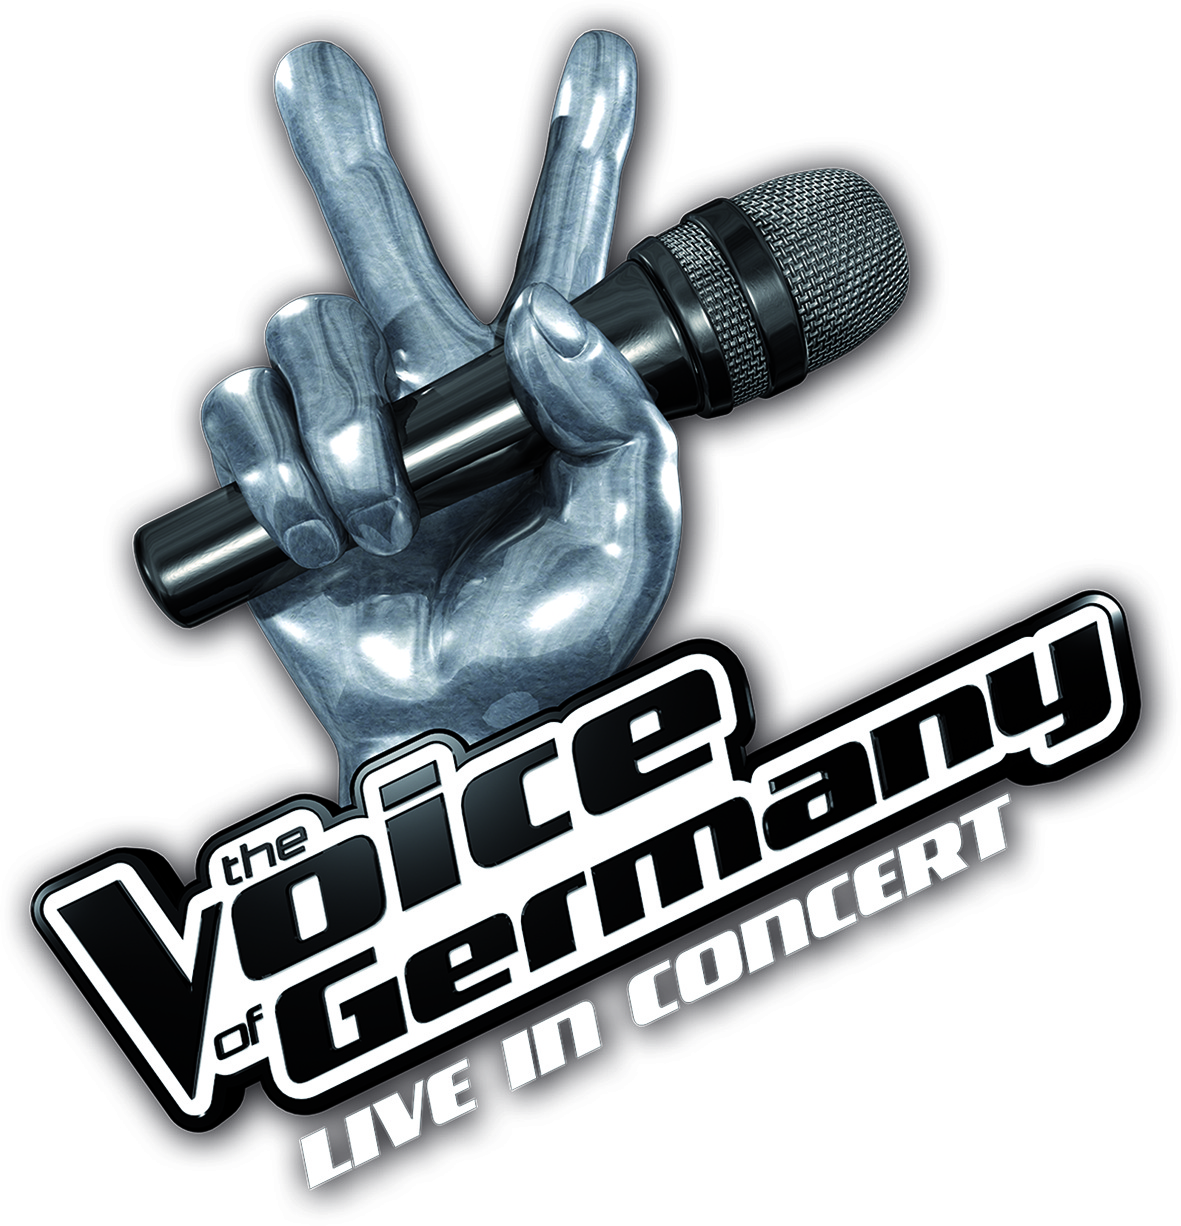 Voice Of Germany Live